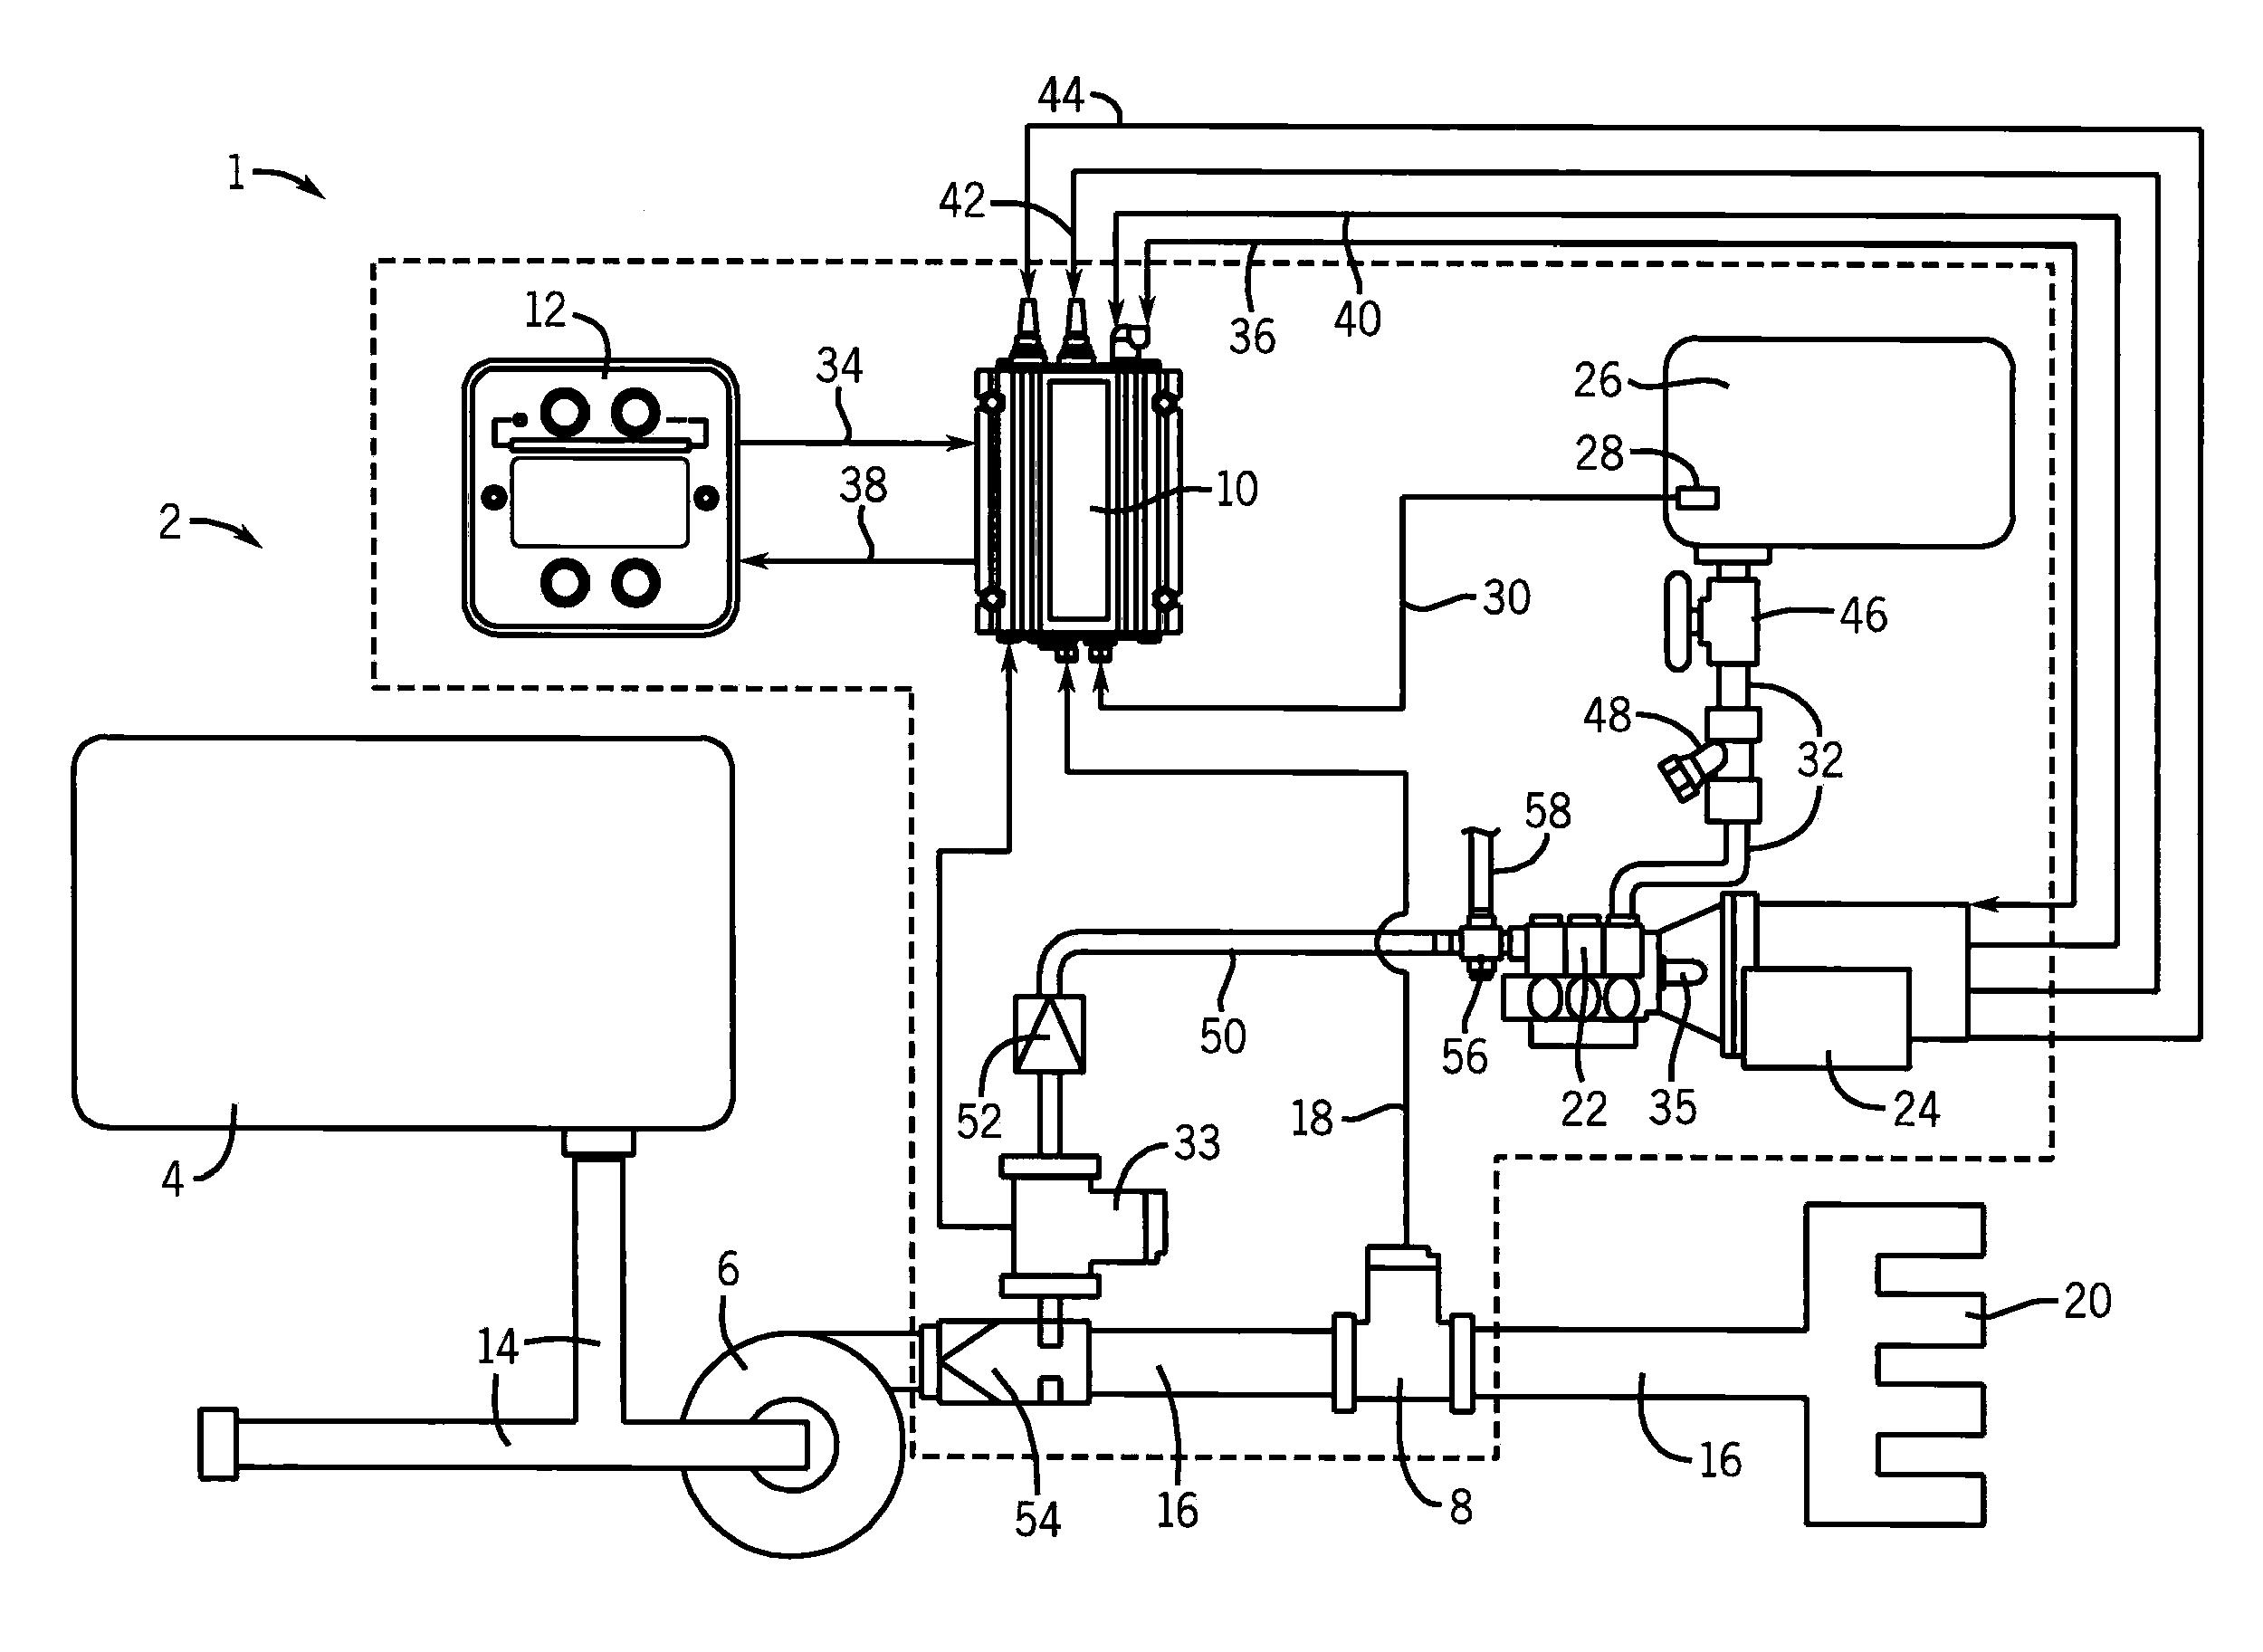 this is a servo system controller circuit this circuit is used to